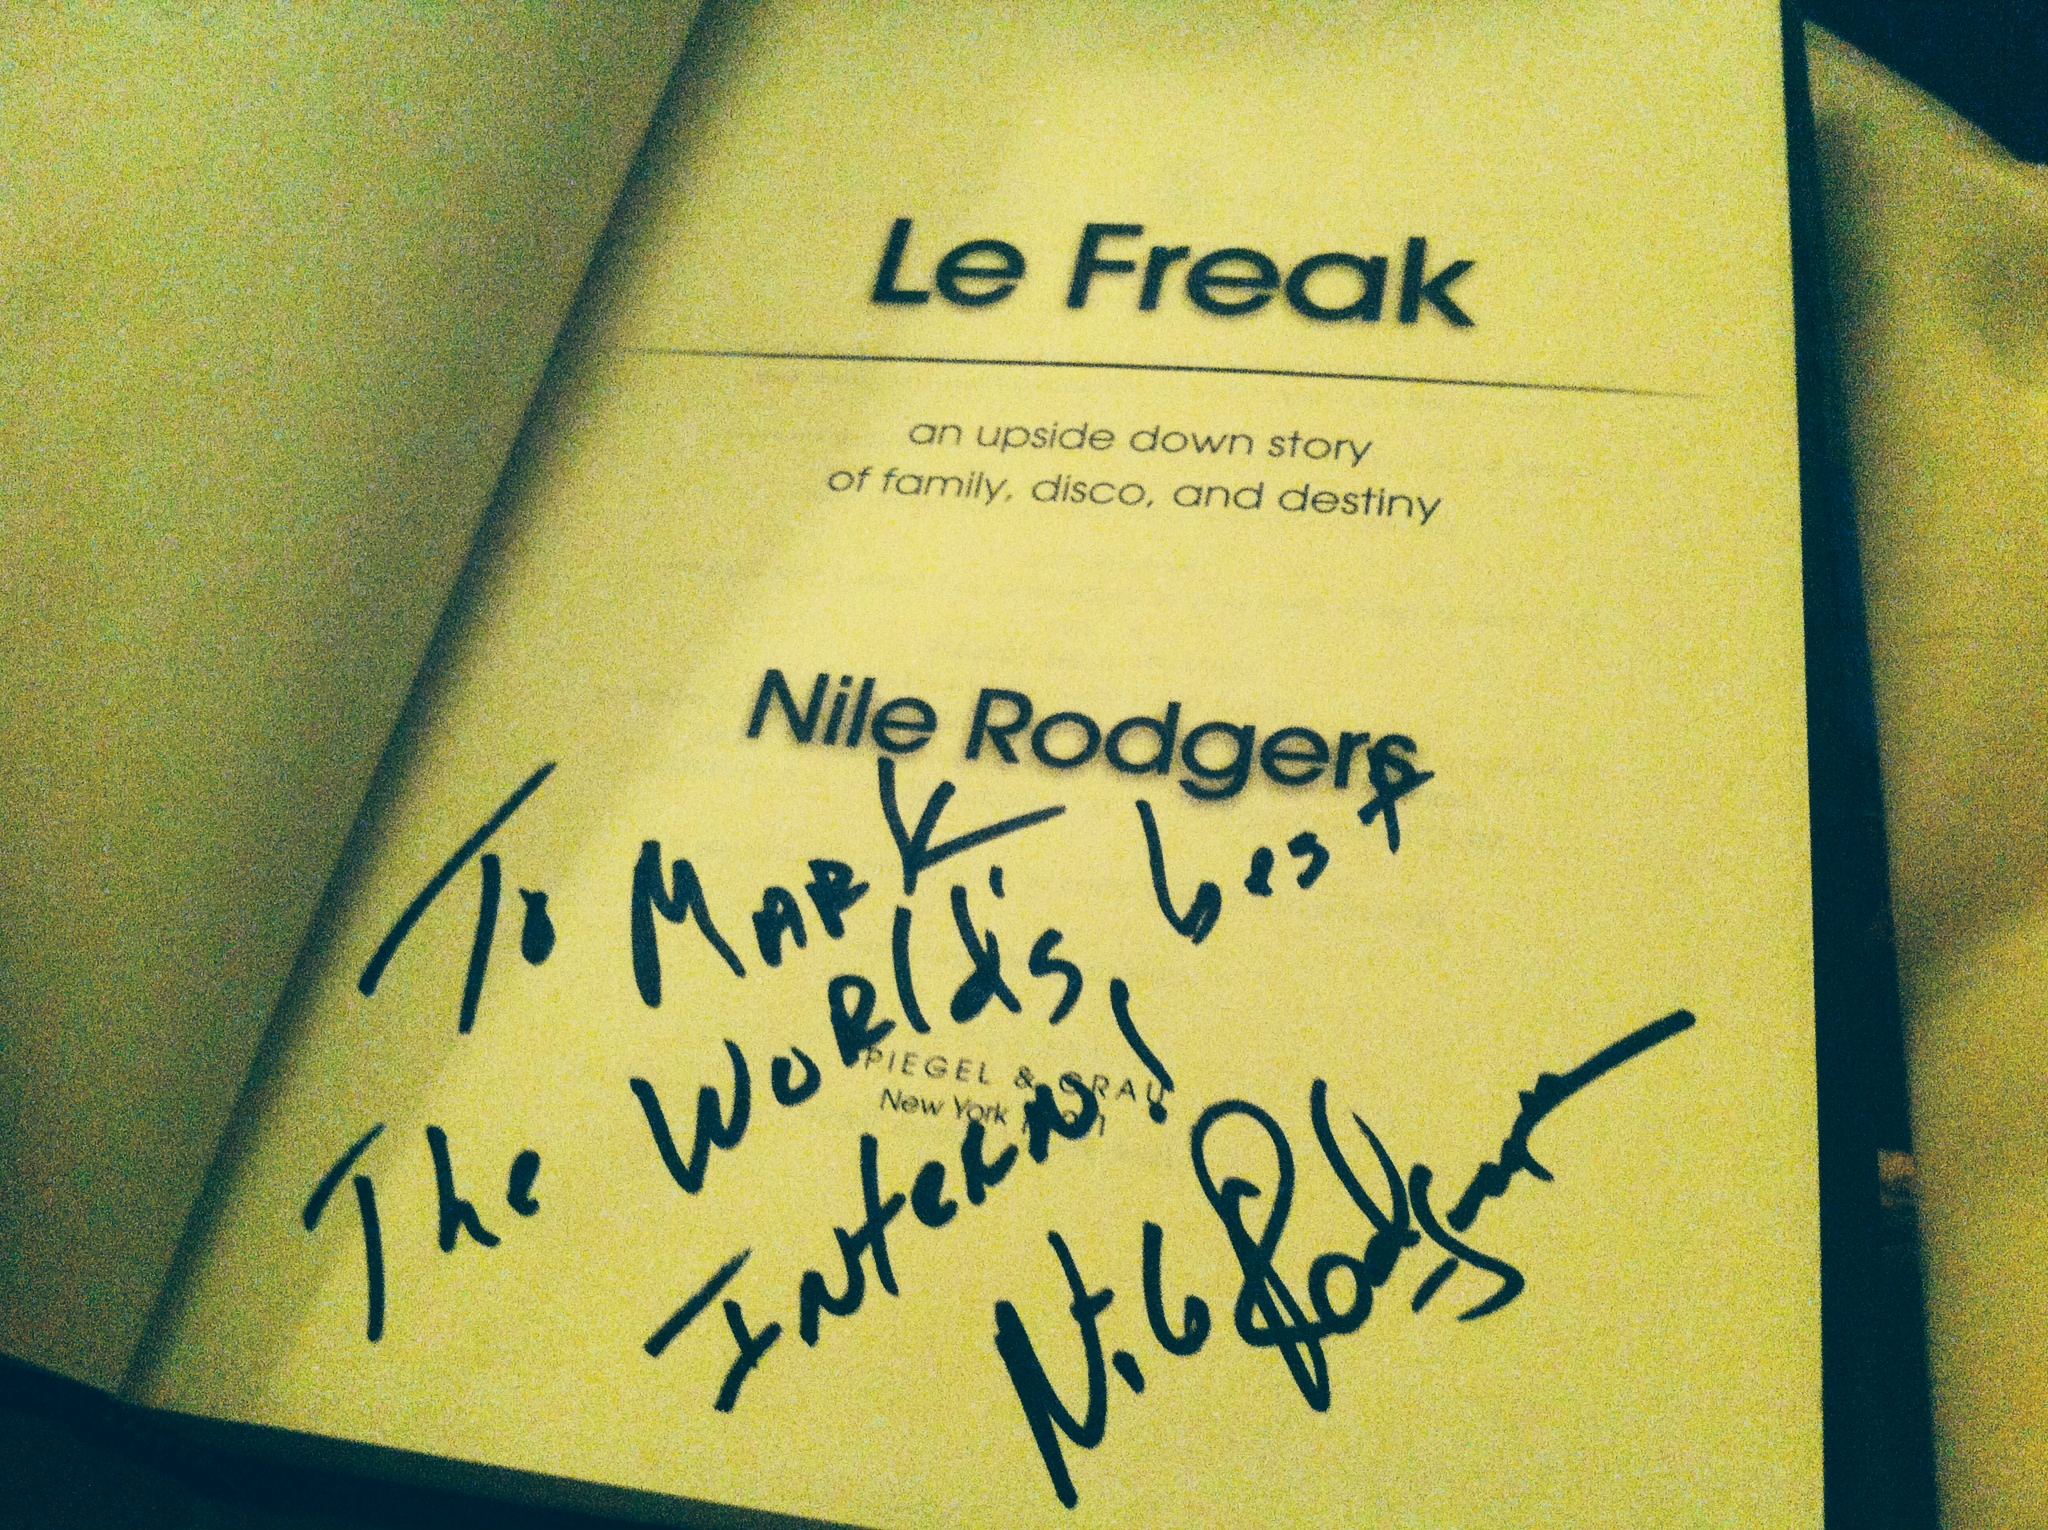 """Nile Rodgers: """"To Mark, The World's Best Intern"""" The Backpacker Intern"""